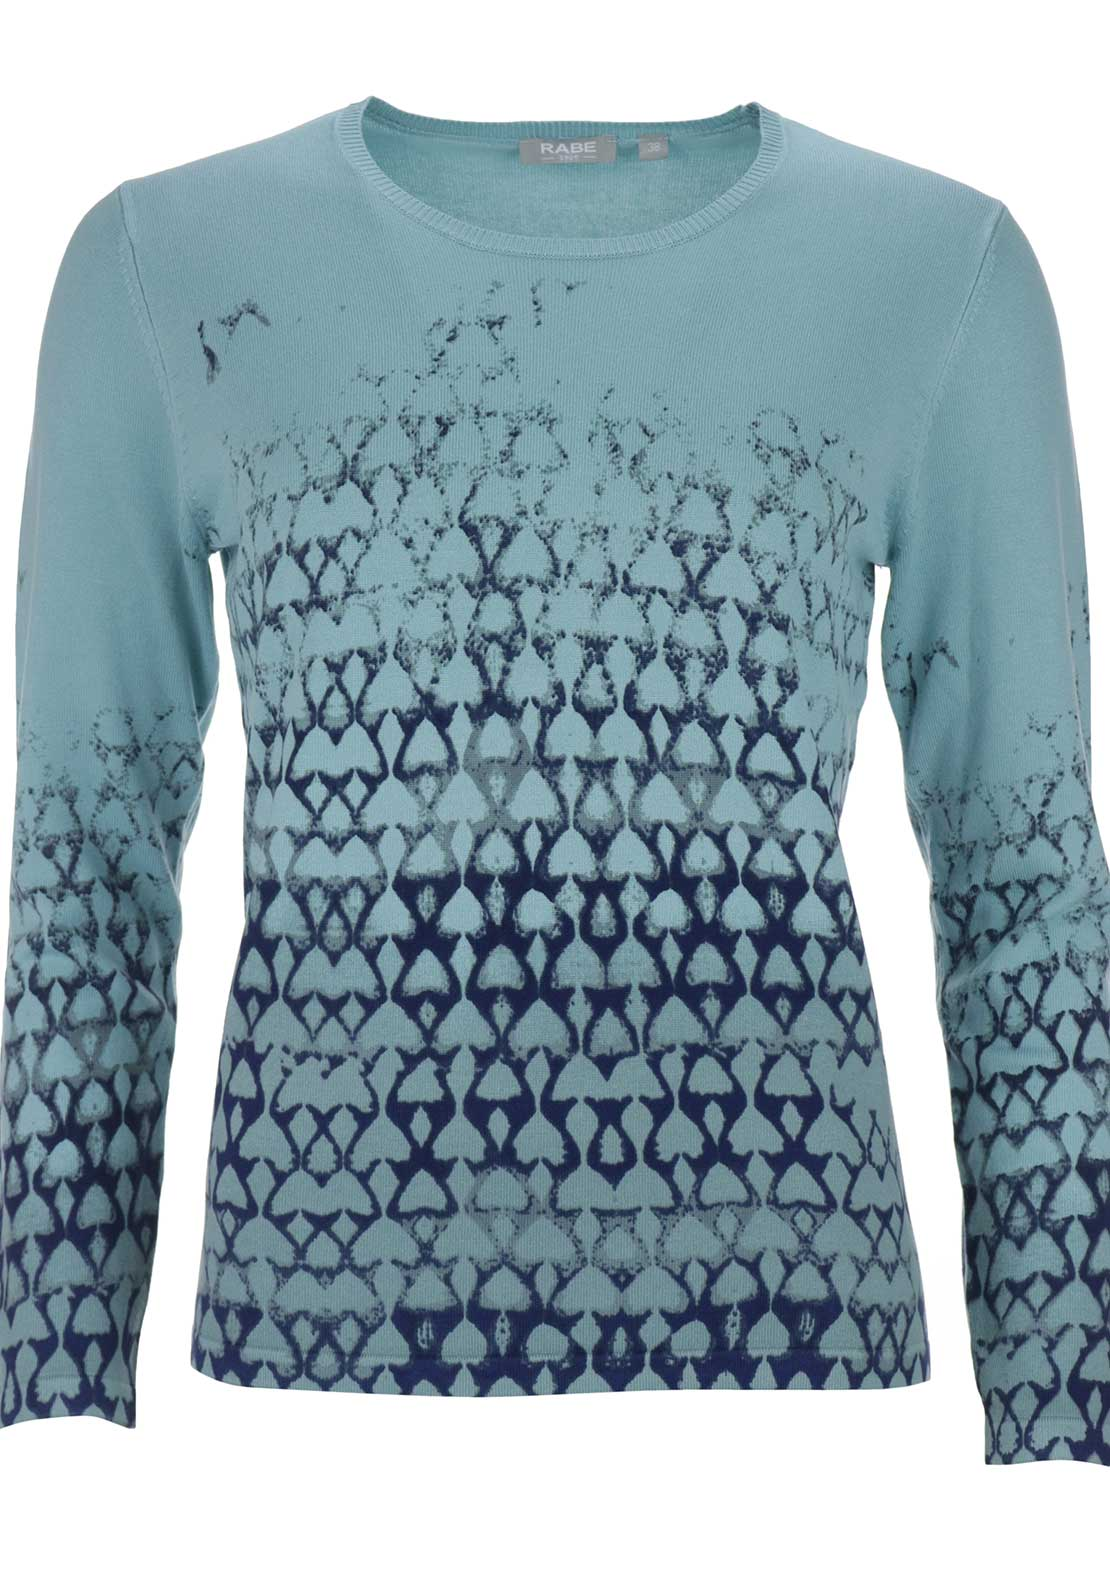 Rabe Printed Round Neck Sweater Jumper, Mint Green